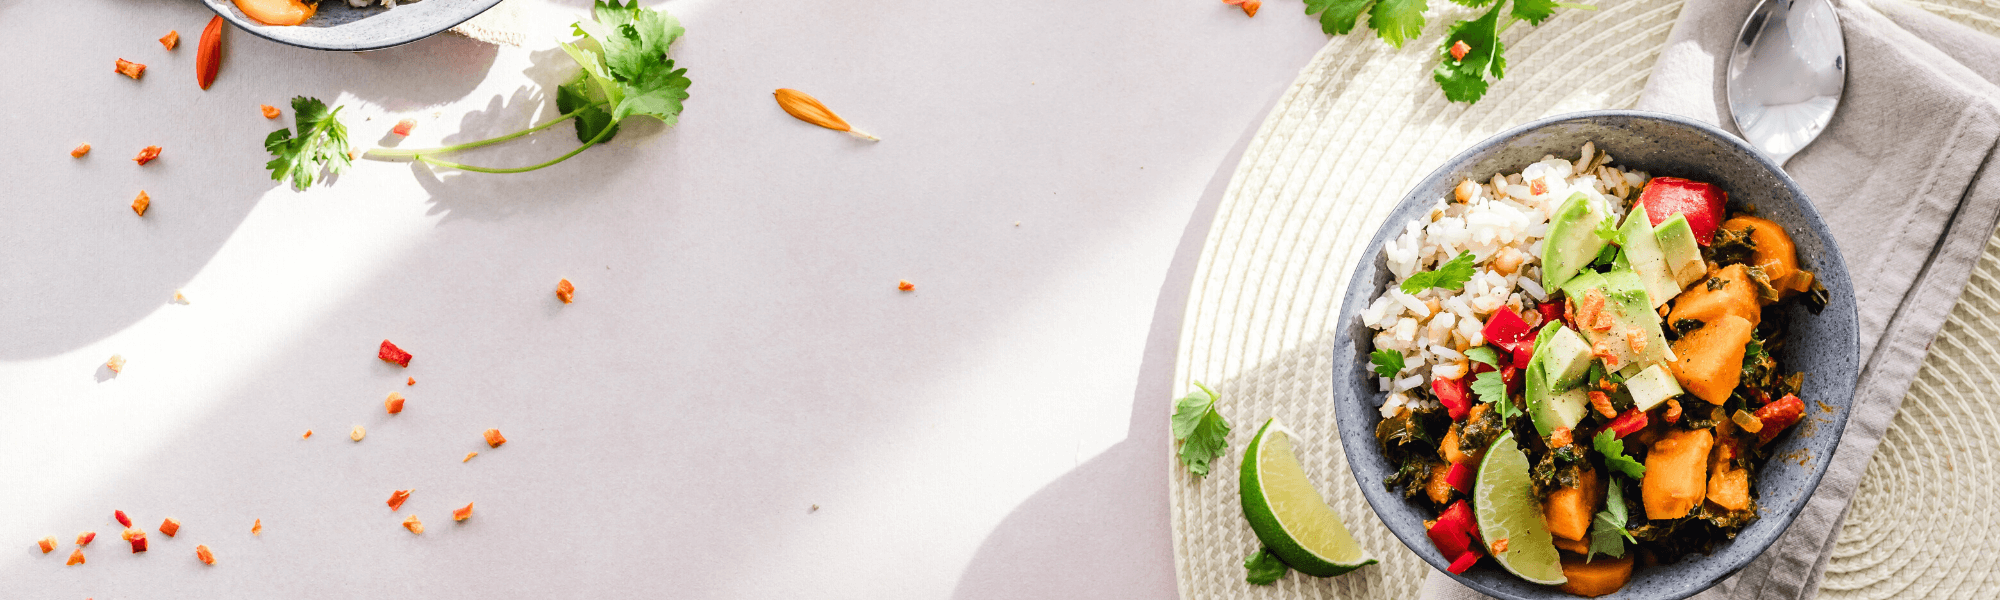 KETO VS. PALEO: WHICH ONE WILL WORK FOR YOU?